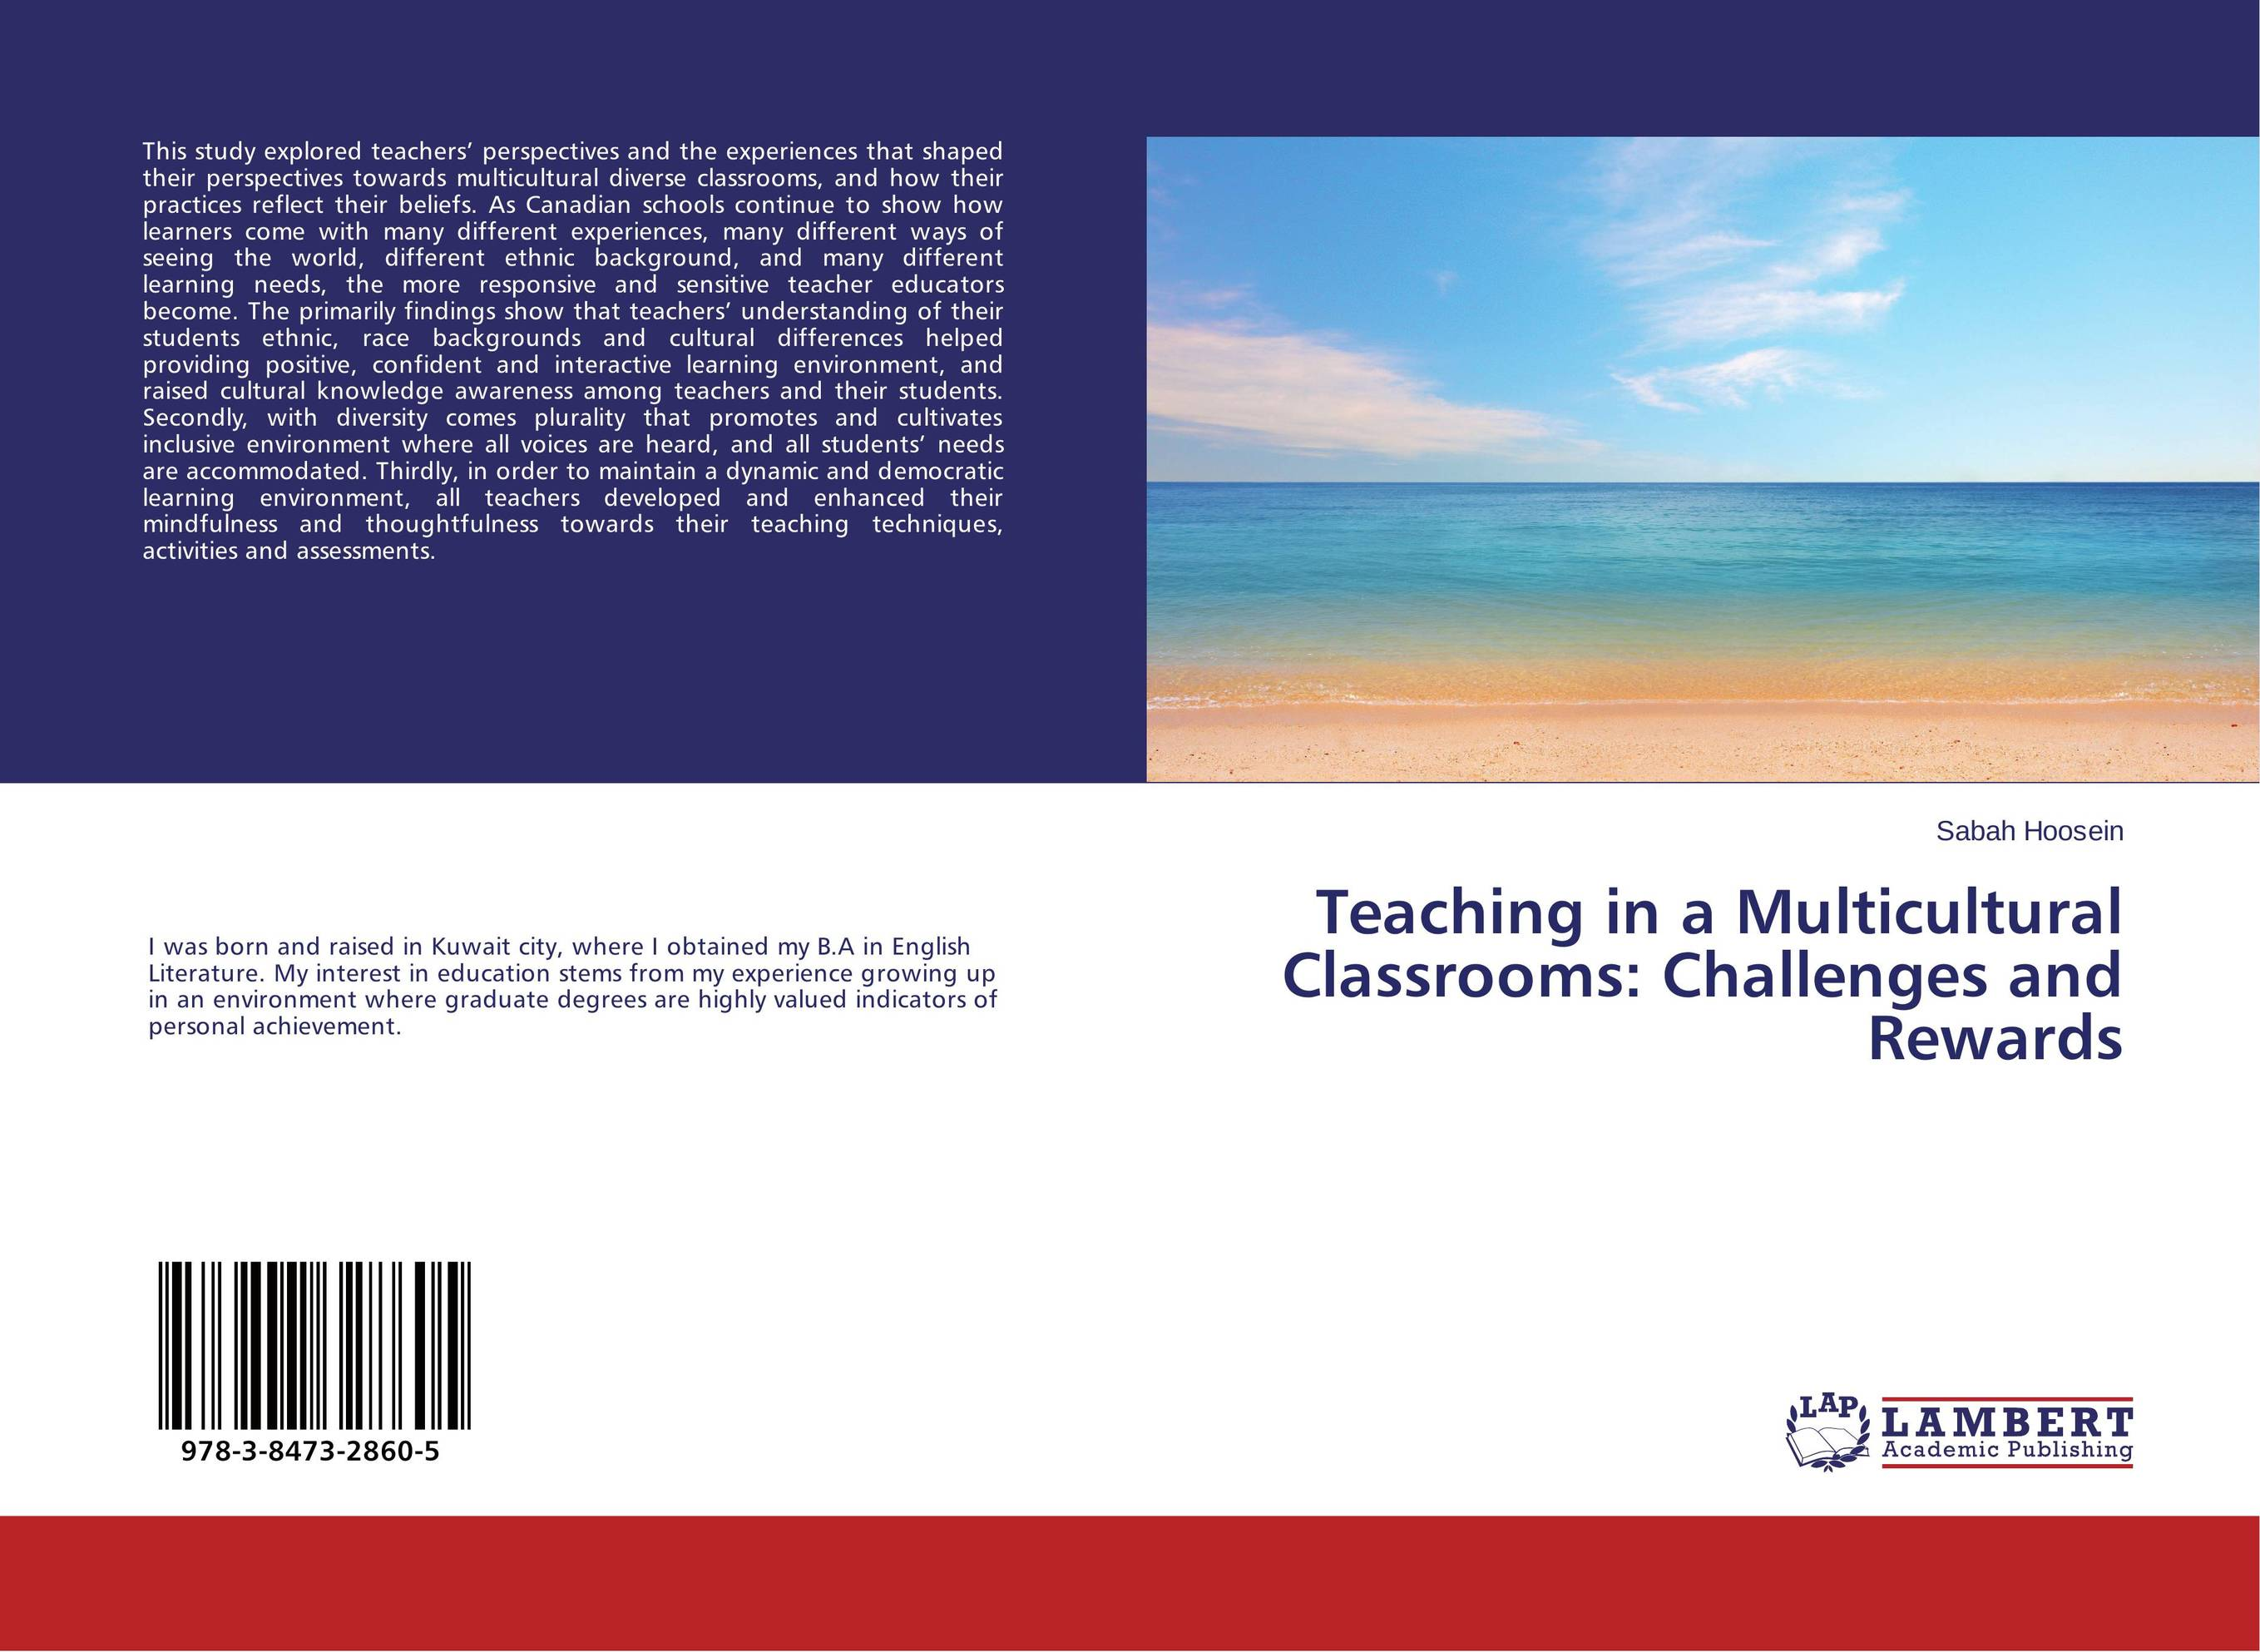 Teaching in a Multicultural Classrooms: Challenges and Rewards female head teachers administrative challenges in schools in kenya